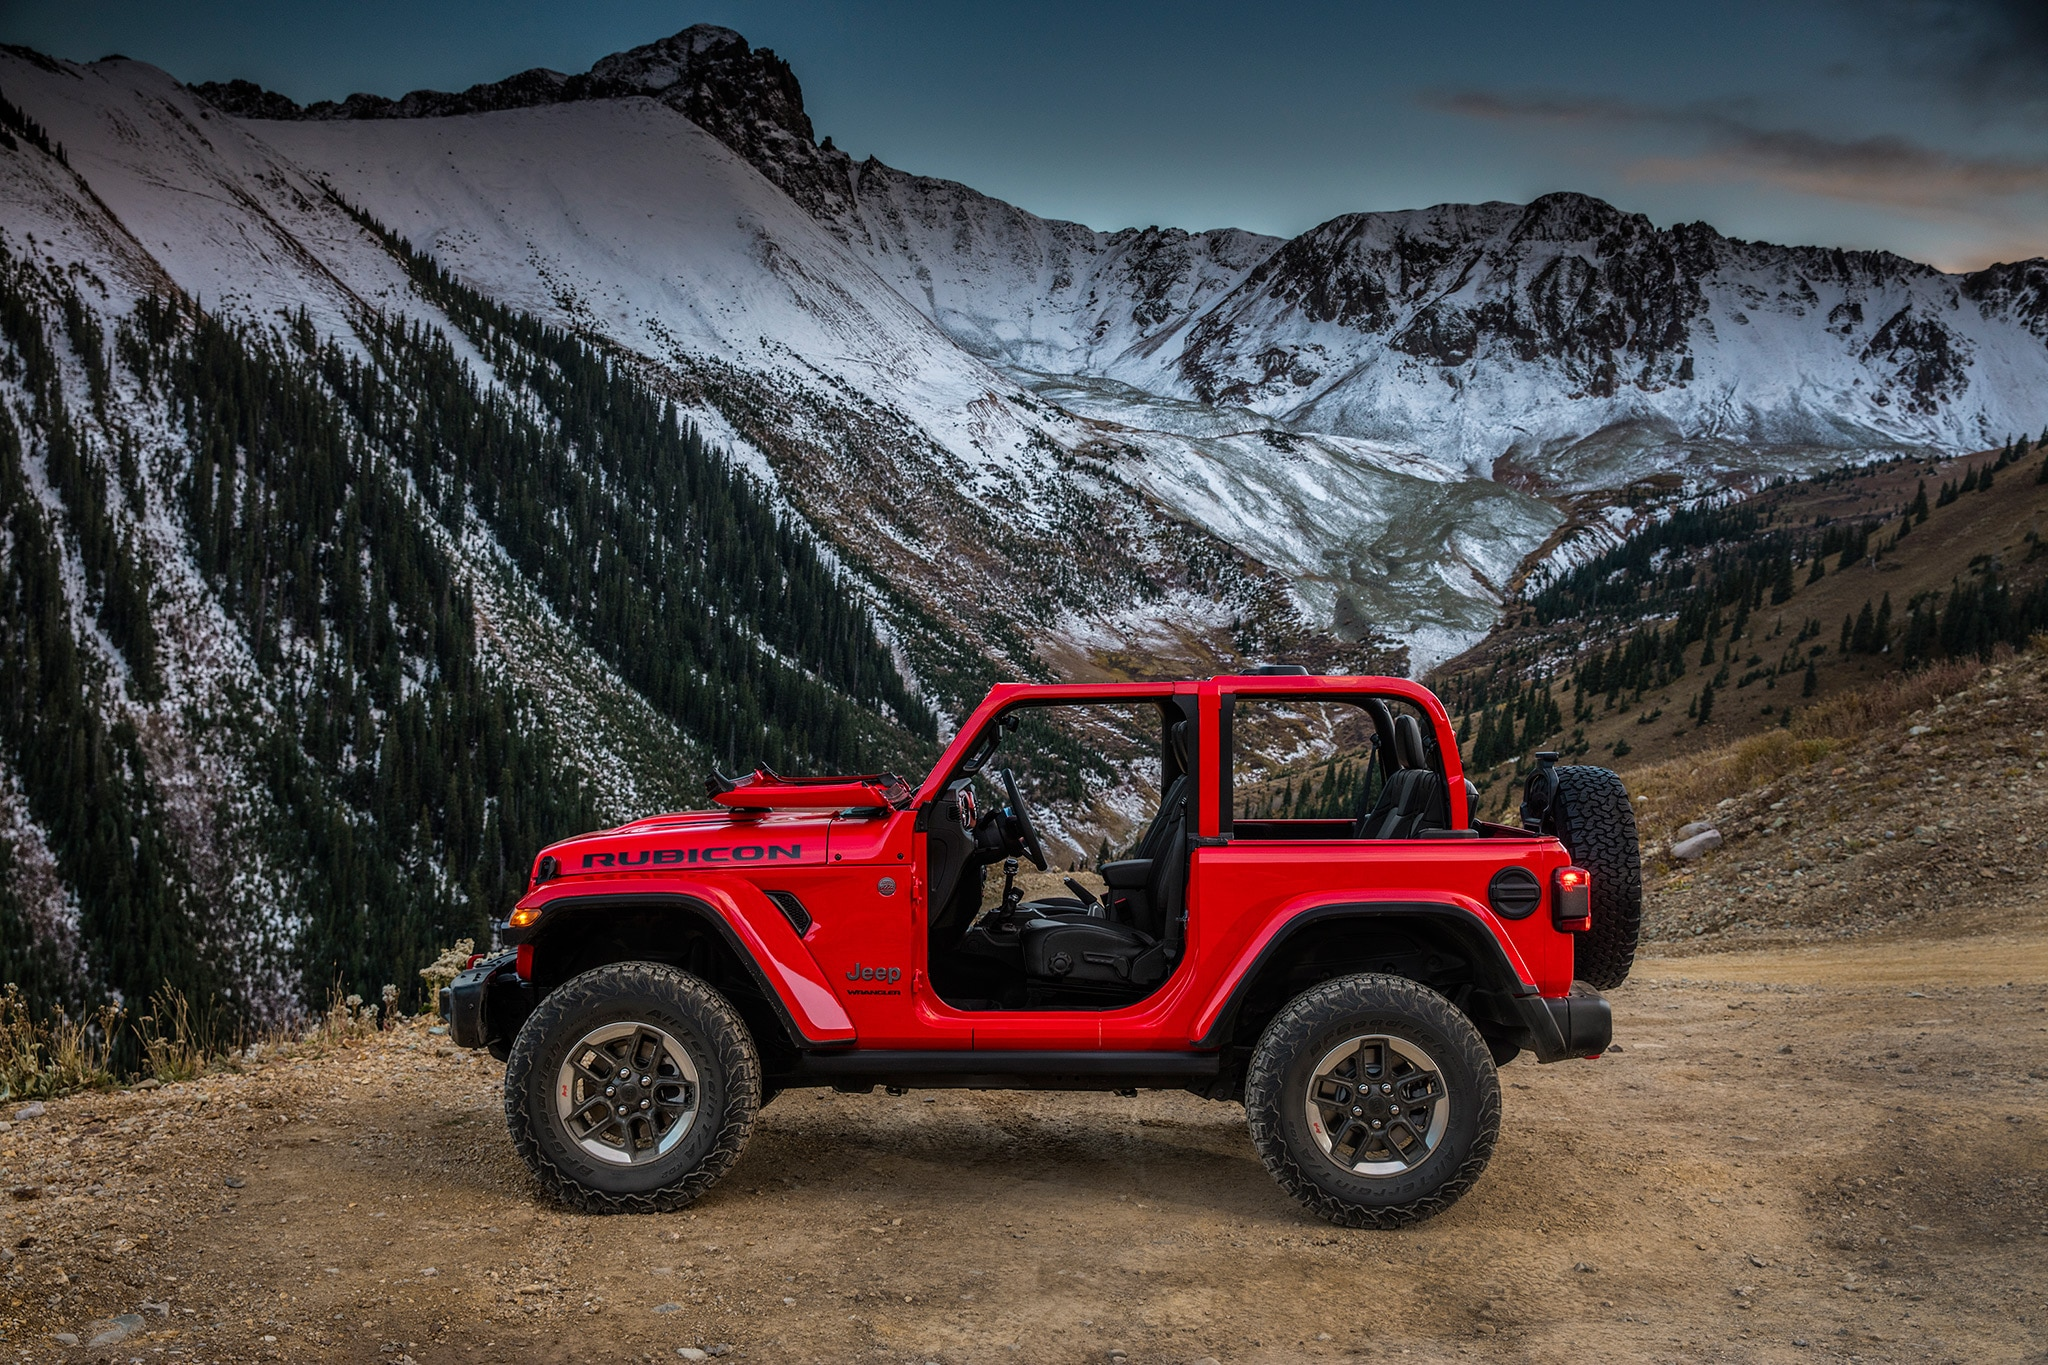 The EPA Still Doesnu0027t Have Information Up On The Other Wranglers In The  Lineup, But If You Order A Wrangler Unlimited With A V 6 And The Six Speed  Manual, ...